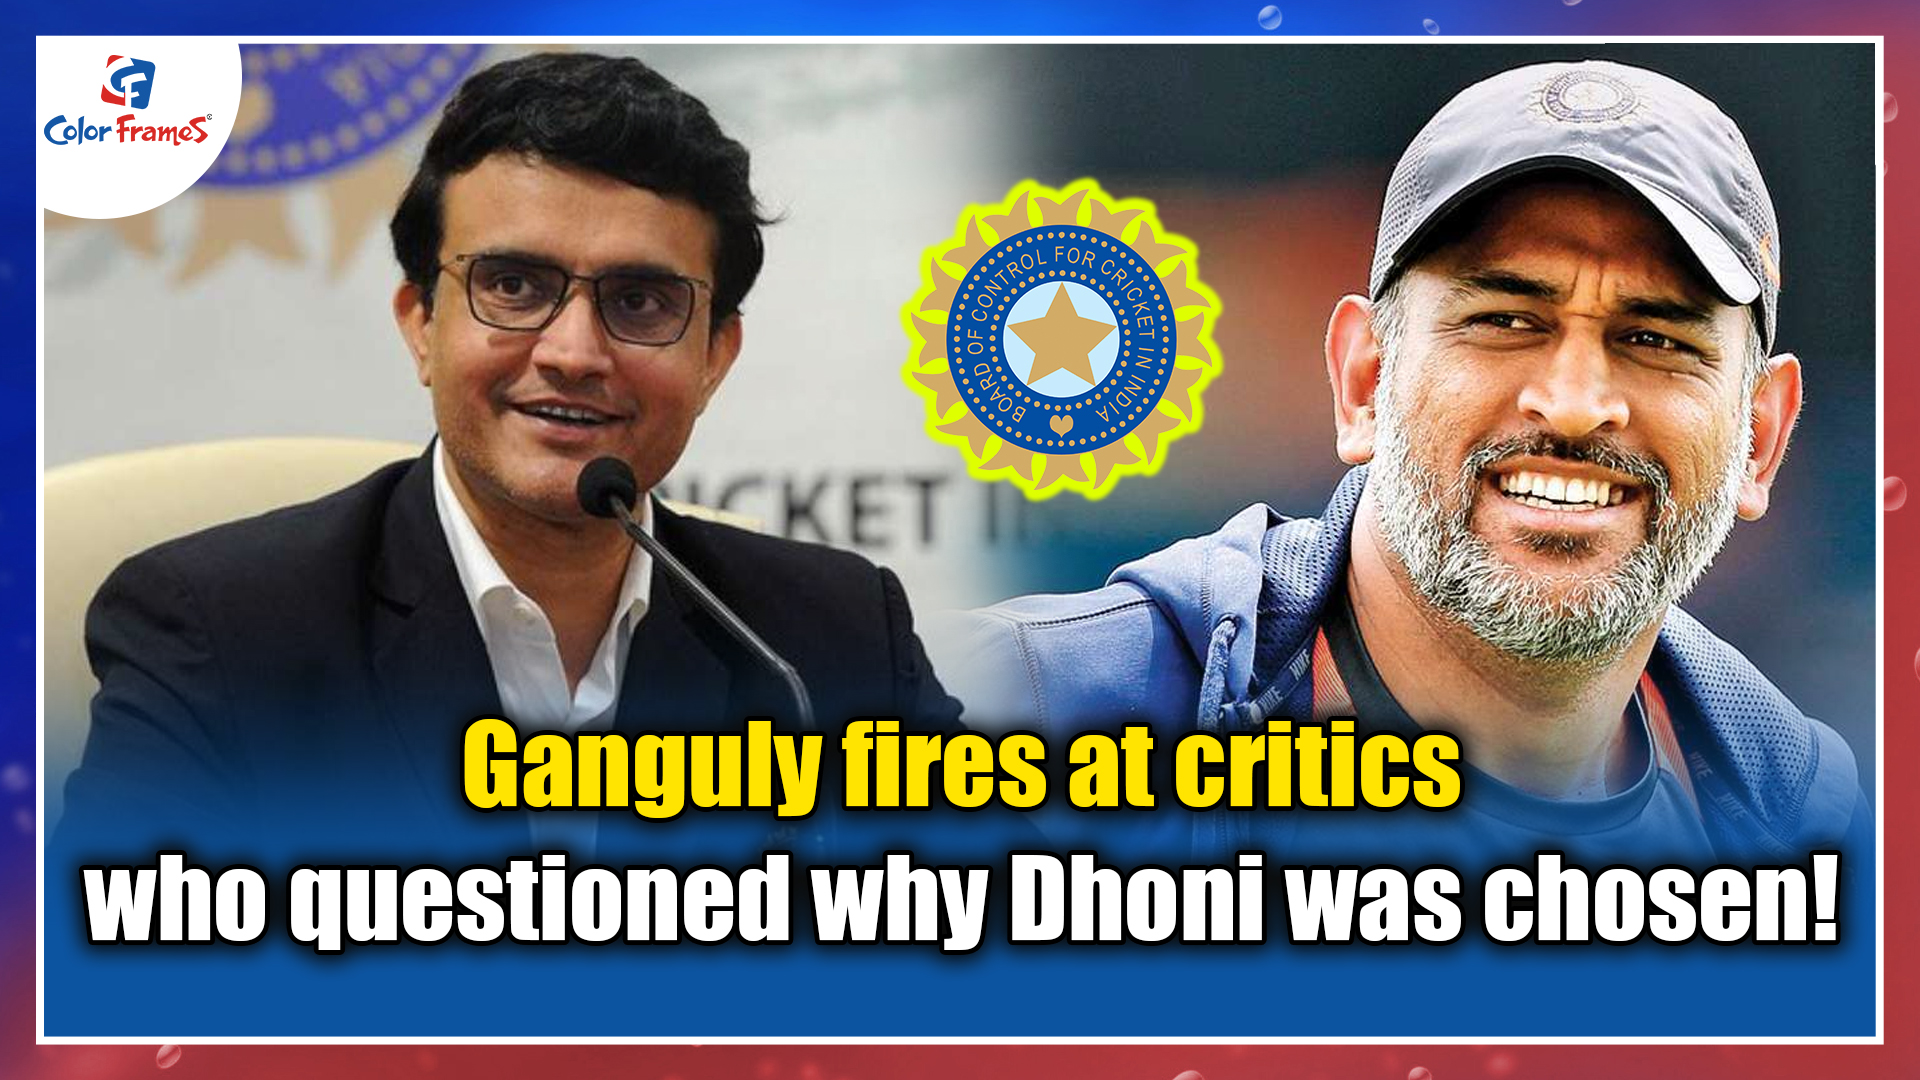 Ganguly fires at critics who questioned why Dhoni was chosen!